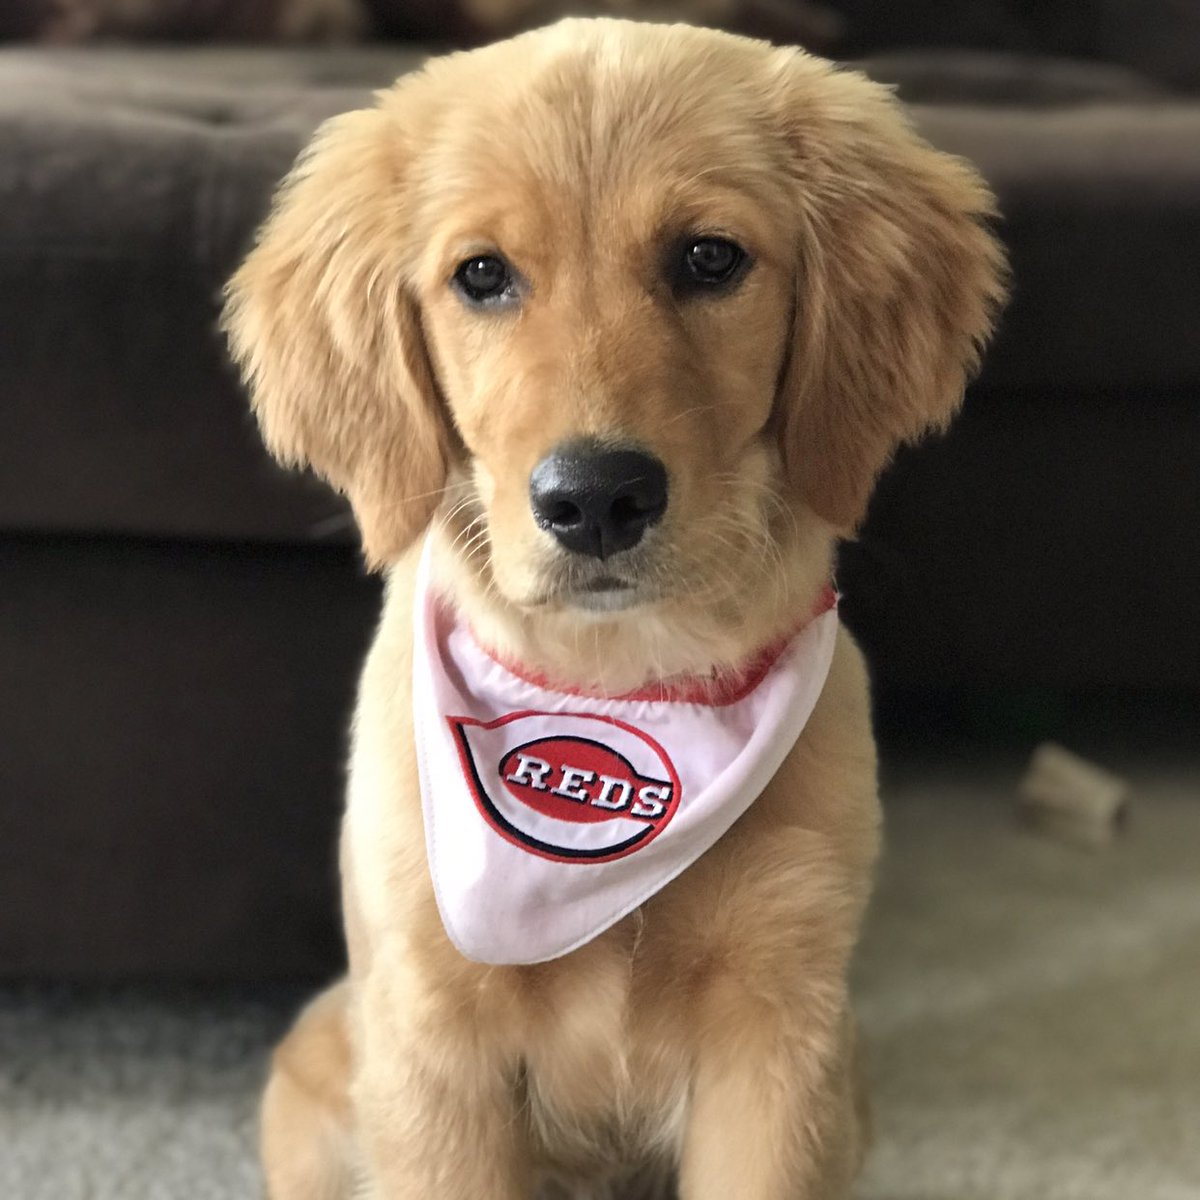 The game is over. Please enjoy this picture of the social media intern's puppy.